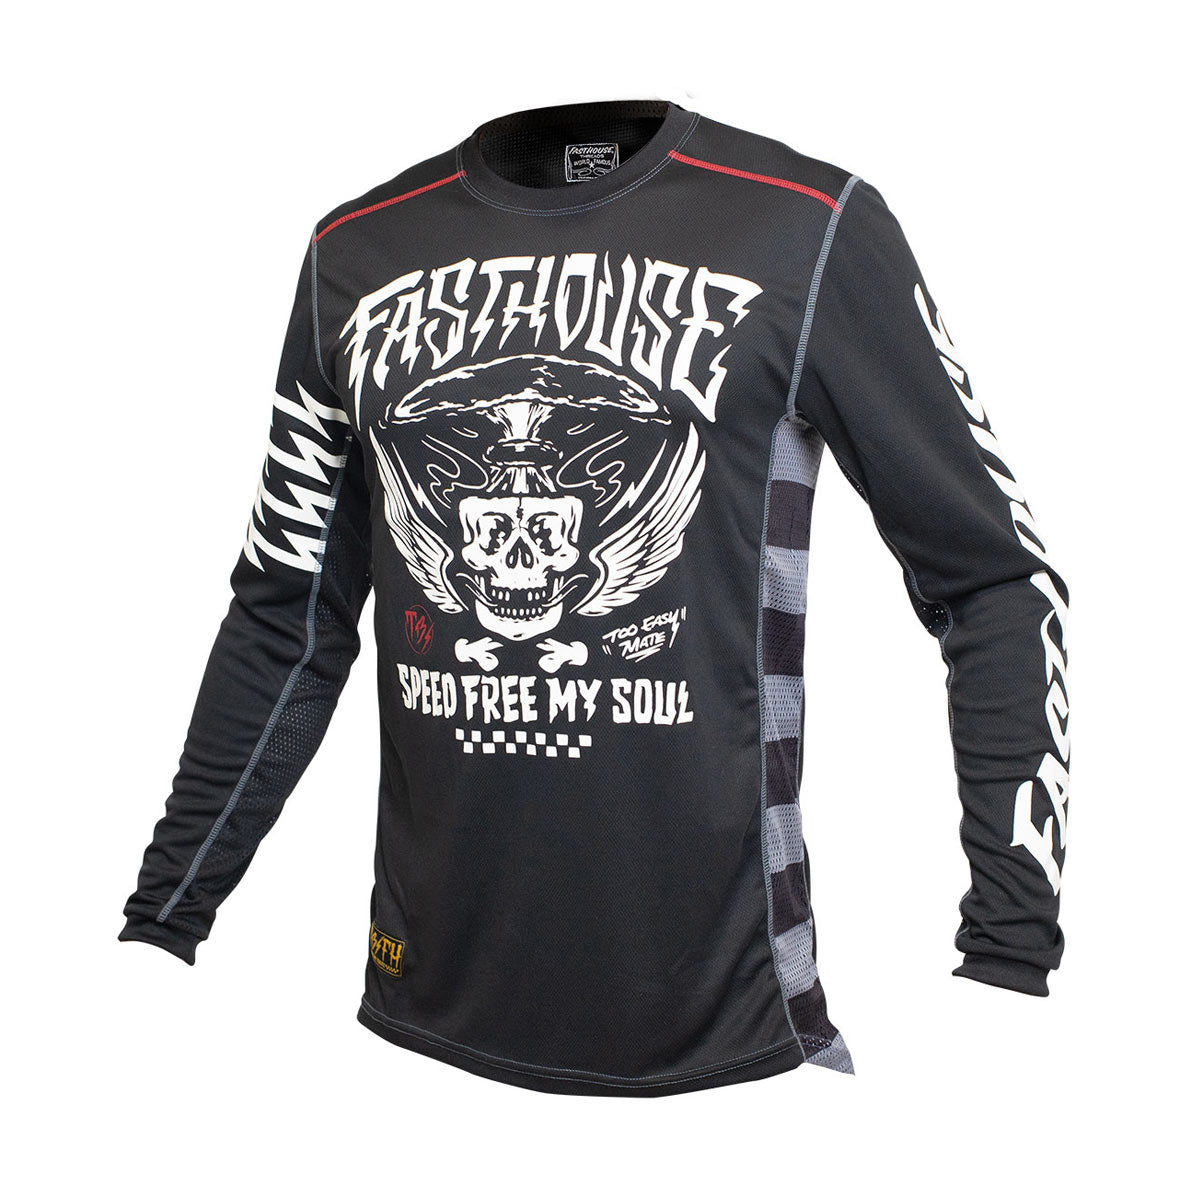 Grindhouse Bereman Youth Jersey - Black